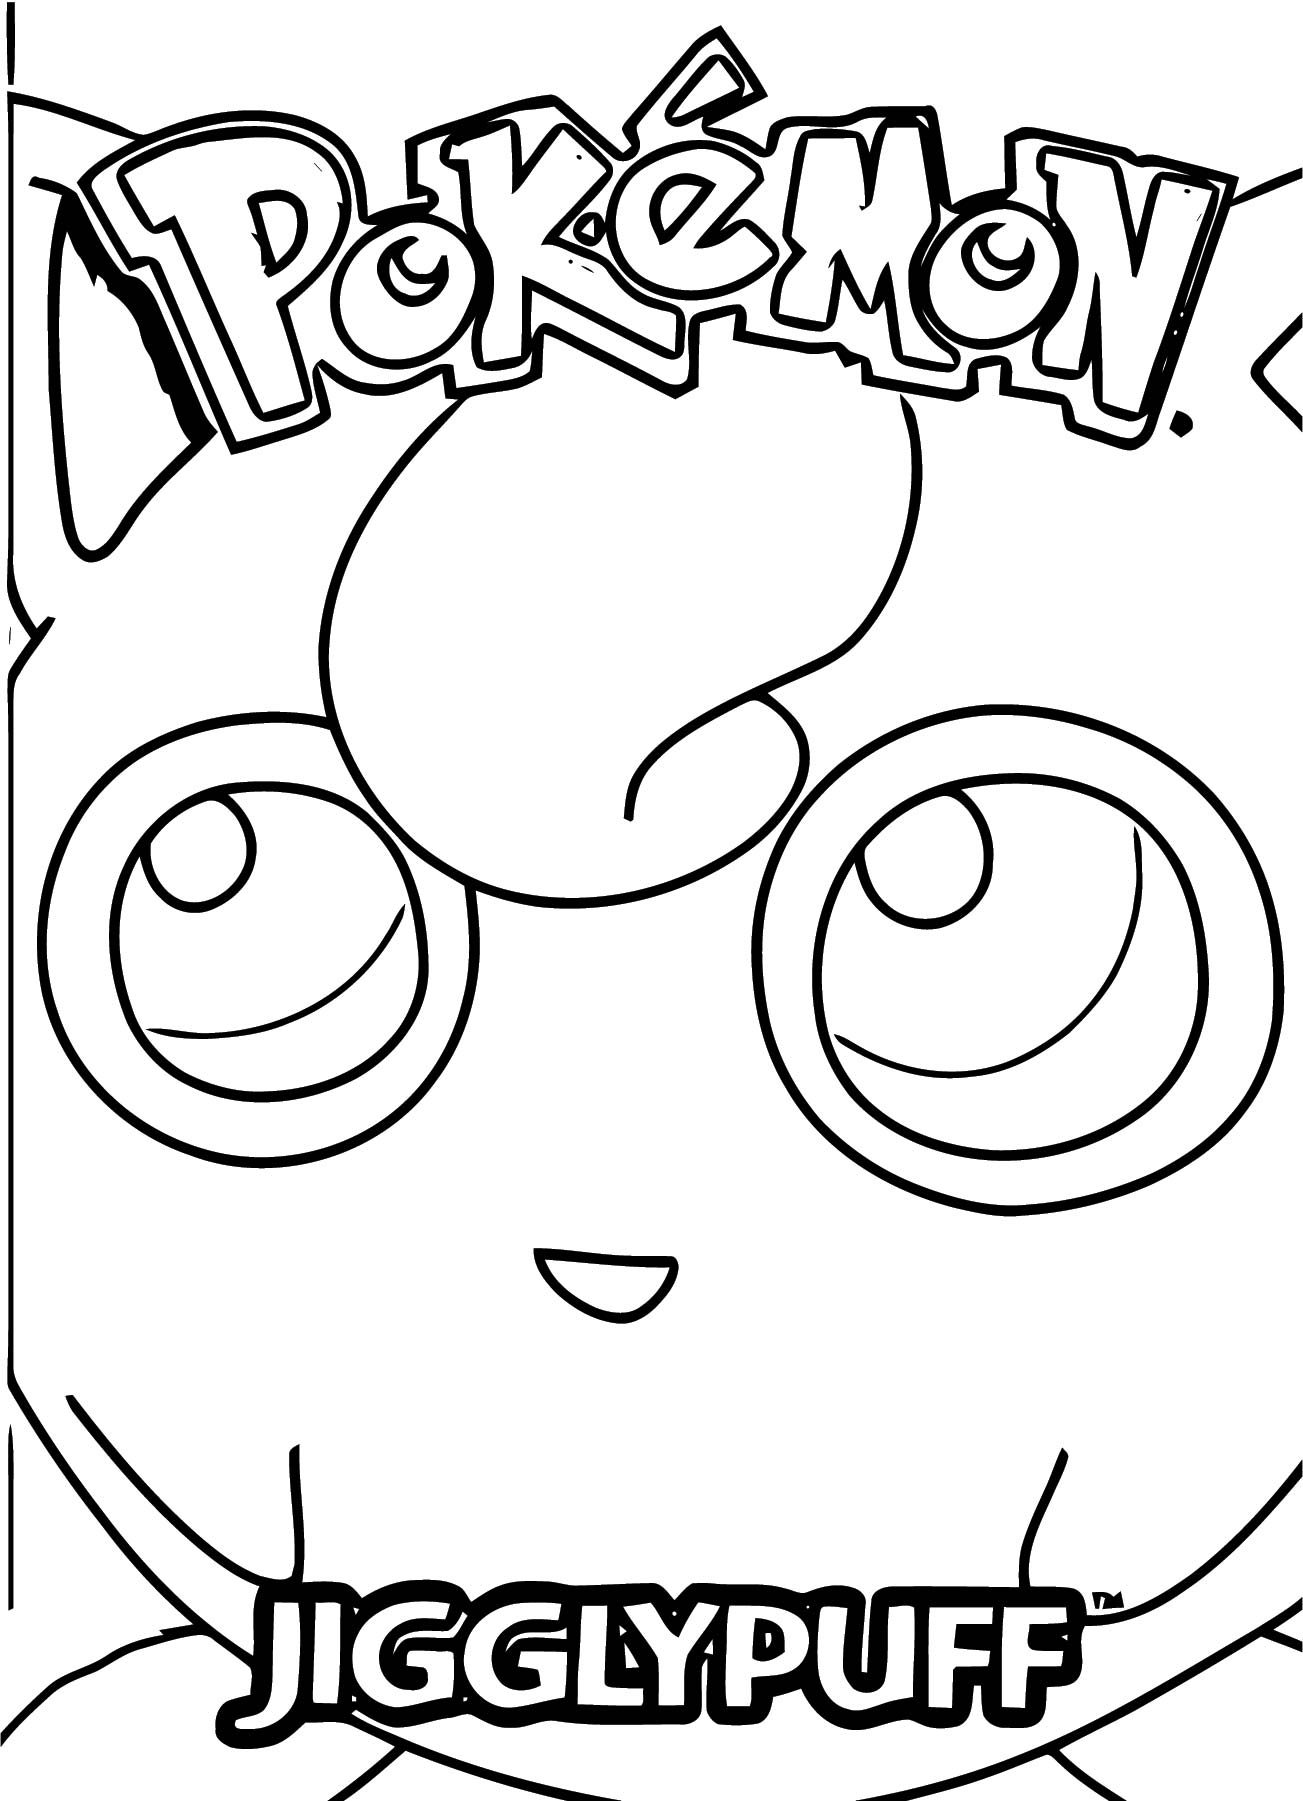 Jigglypuff Coloring Page WeColoringPage 011